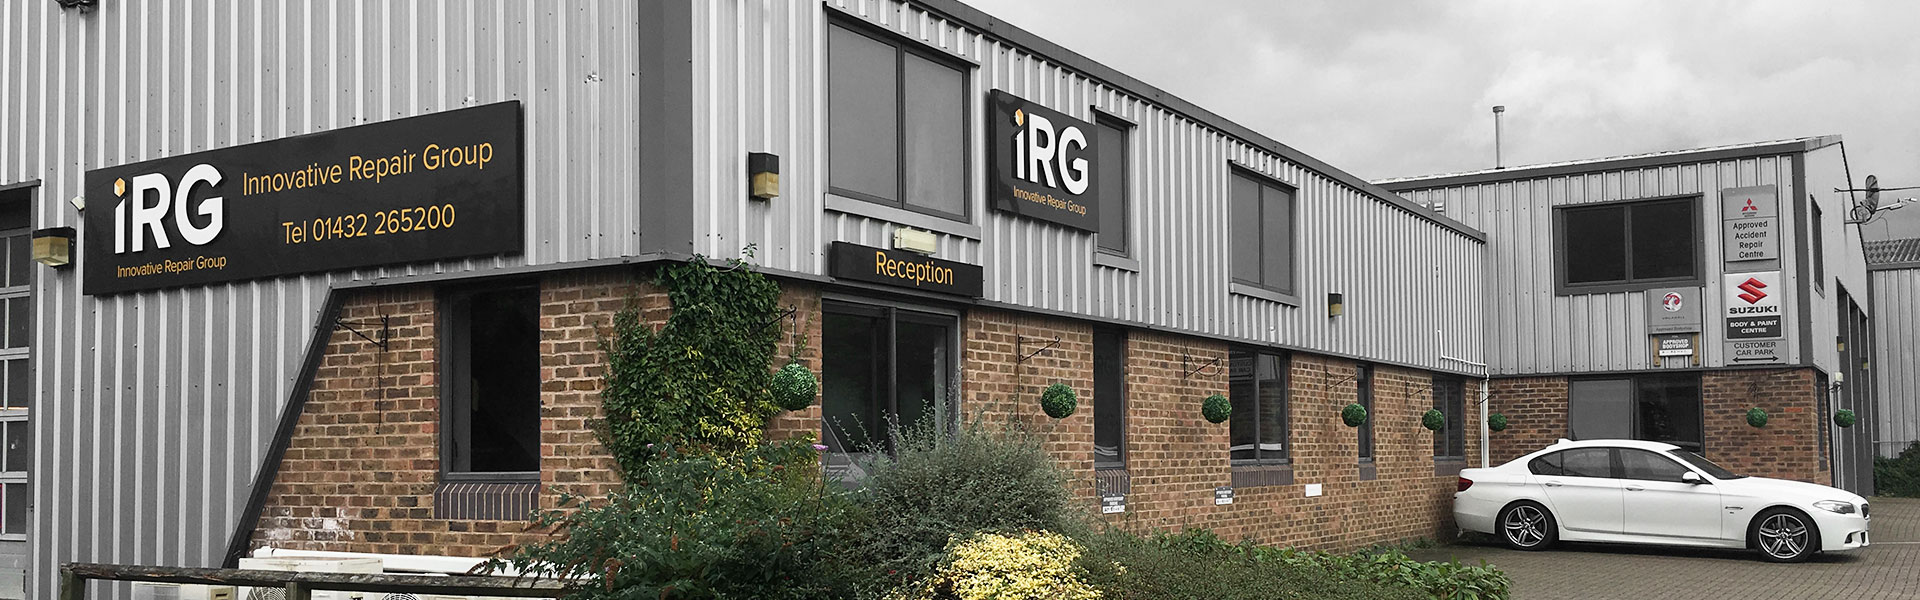 Welcome to iRG Hereford